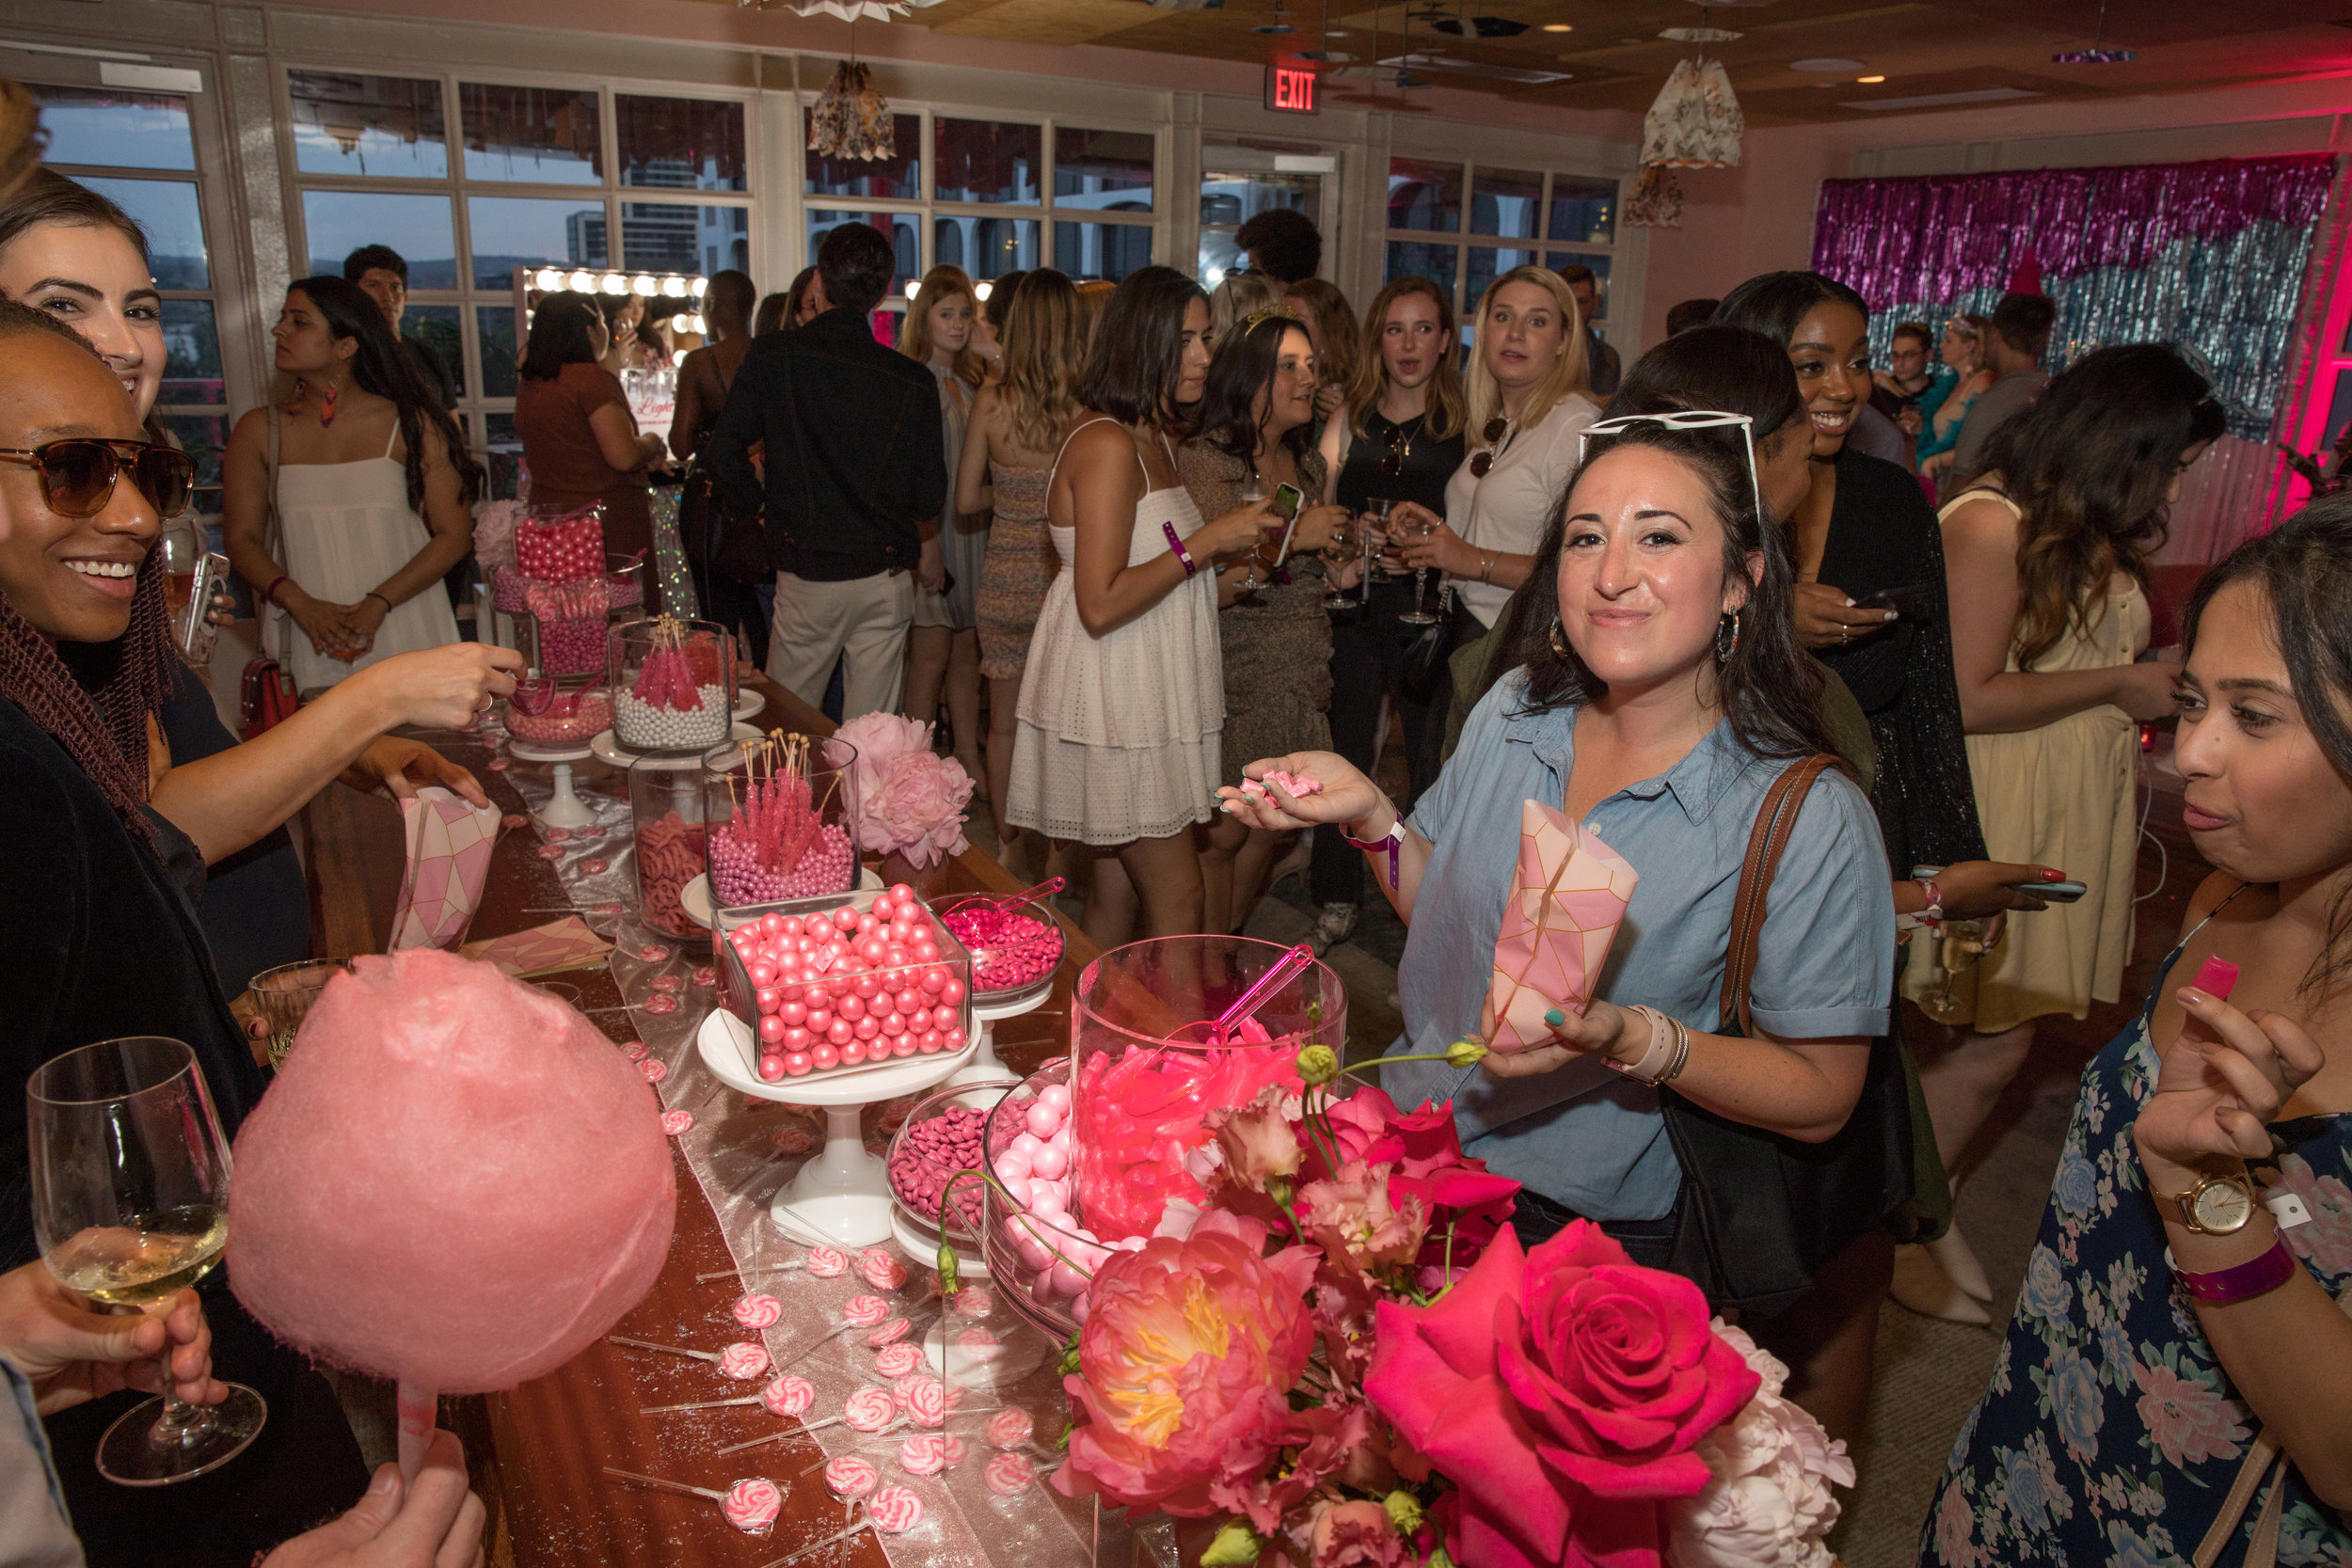 Guests enjoy the neatly organized, all-pink candy bar.